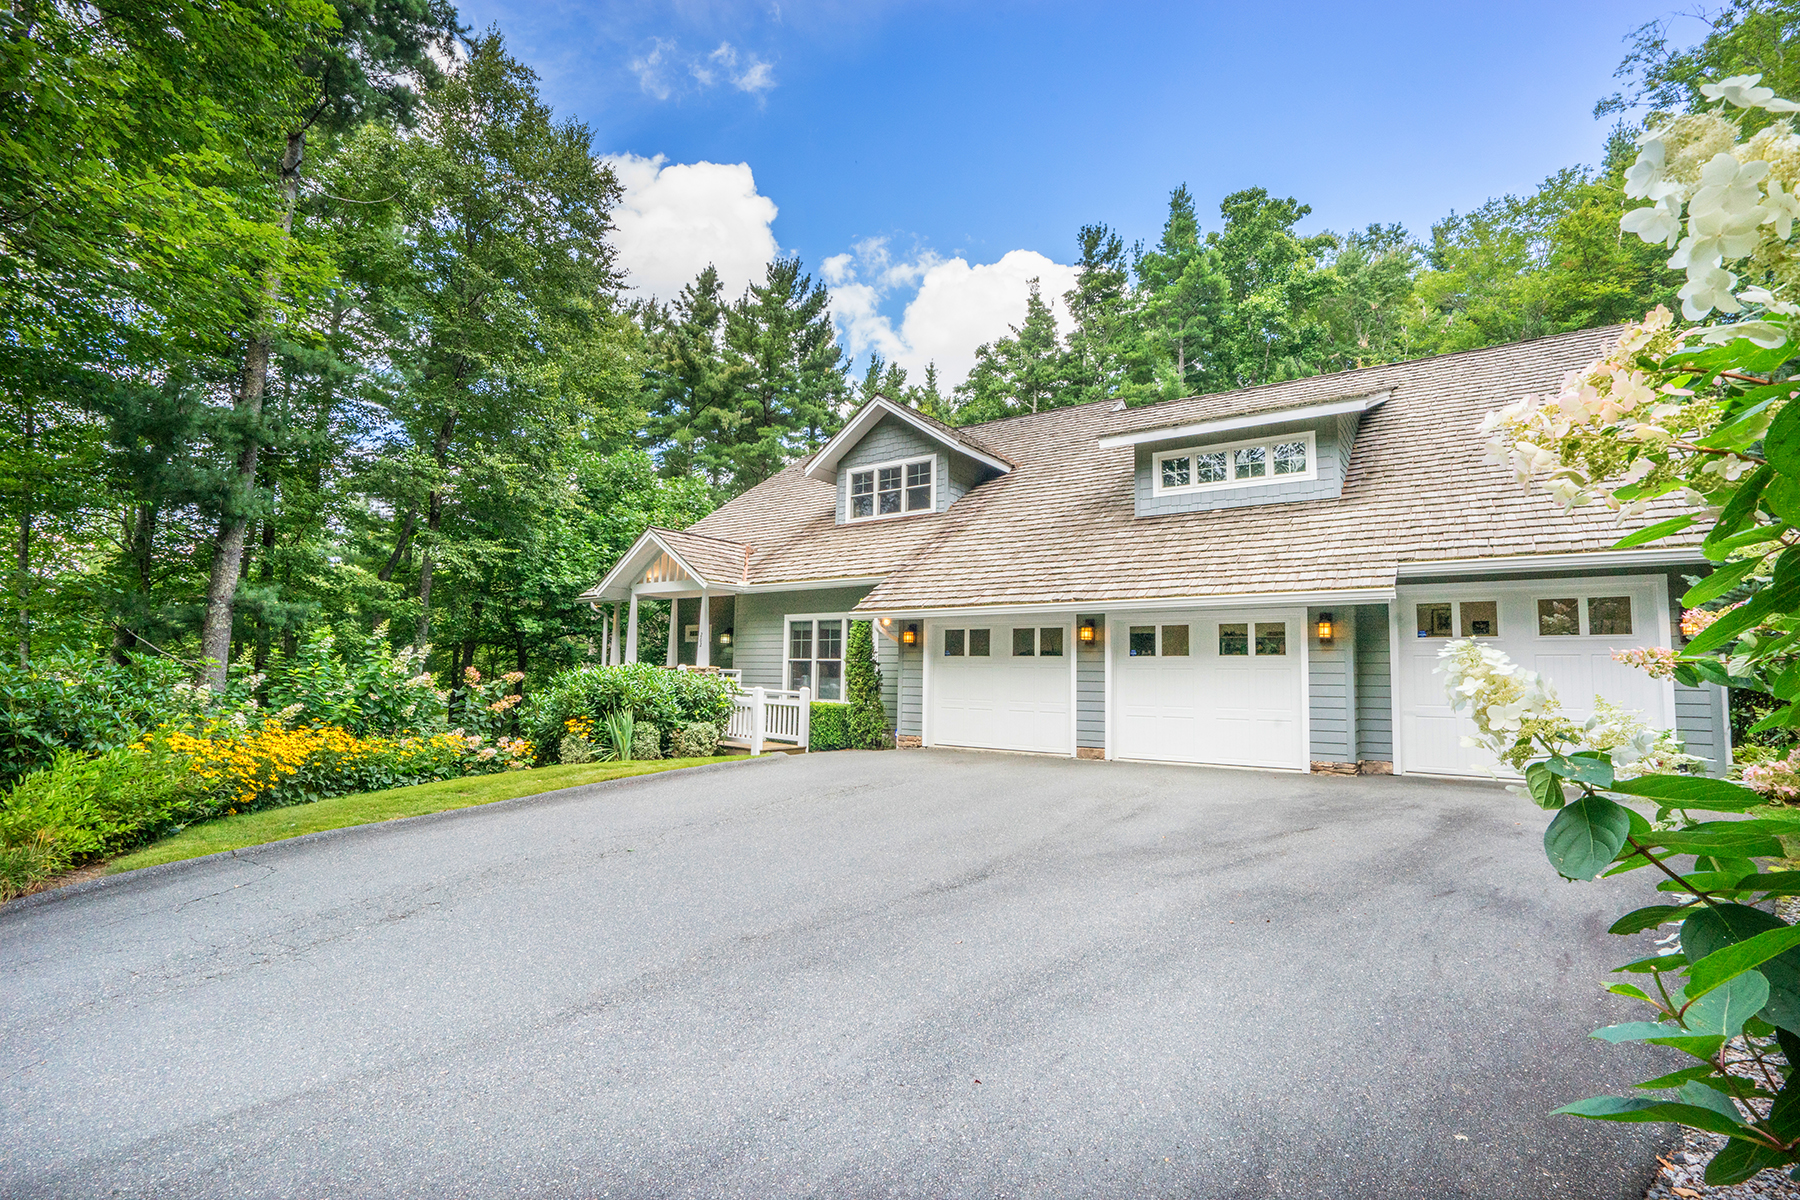 Single Family Home for Sale at BLOWING ROCK 262 High Ridge Ln, Blowing Rock, North Carolina 28605 United States